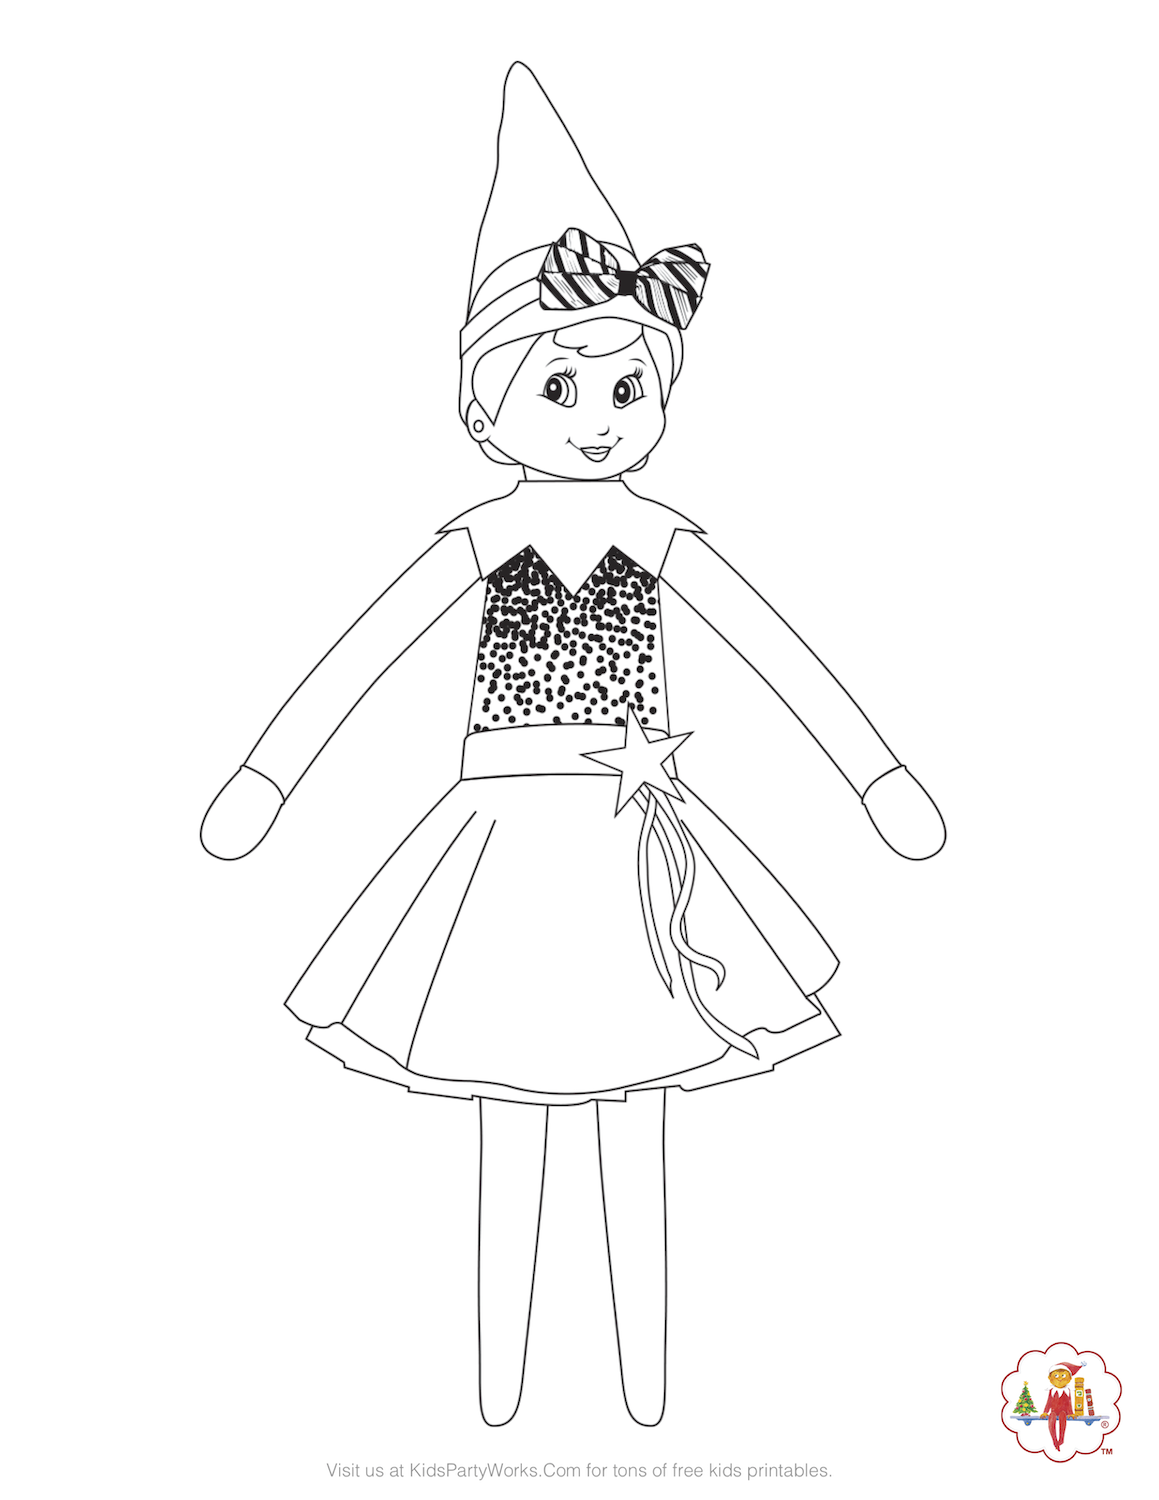 elf on the shelf coloring sheets elf on the shelf coloring pages free coloring home on coloring elf the shelf sheets